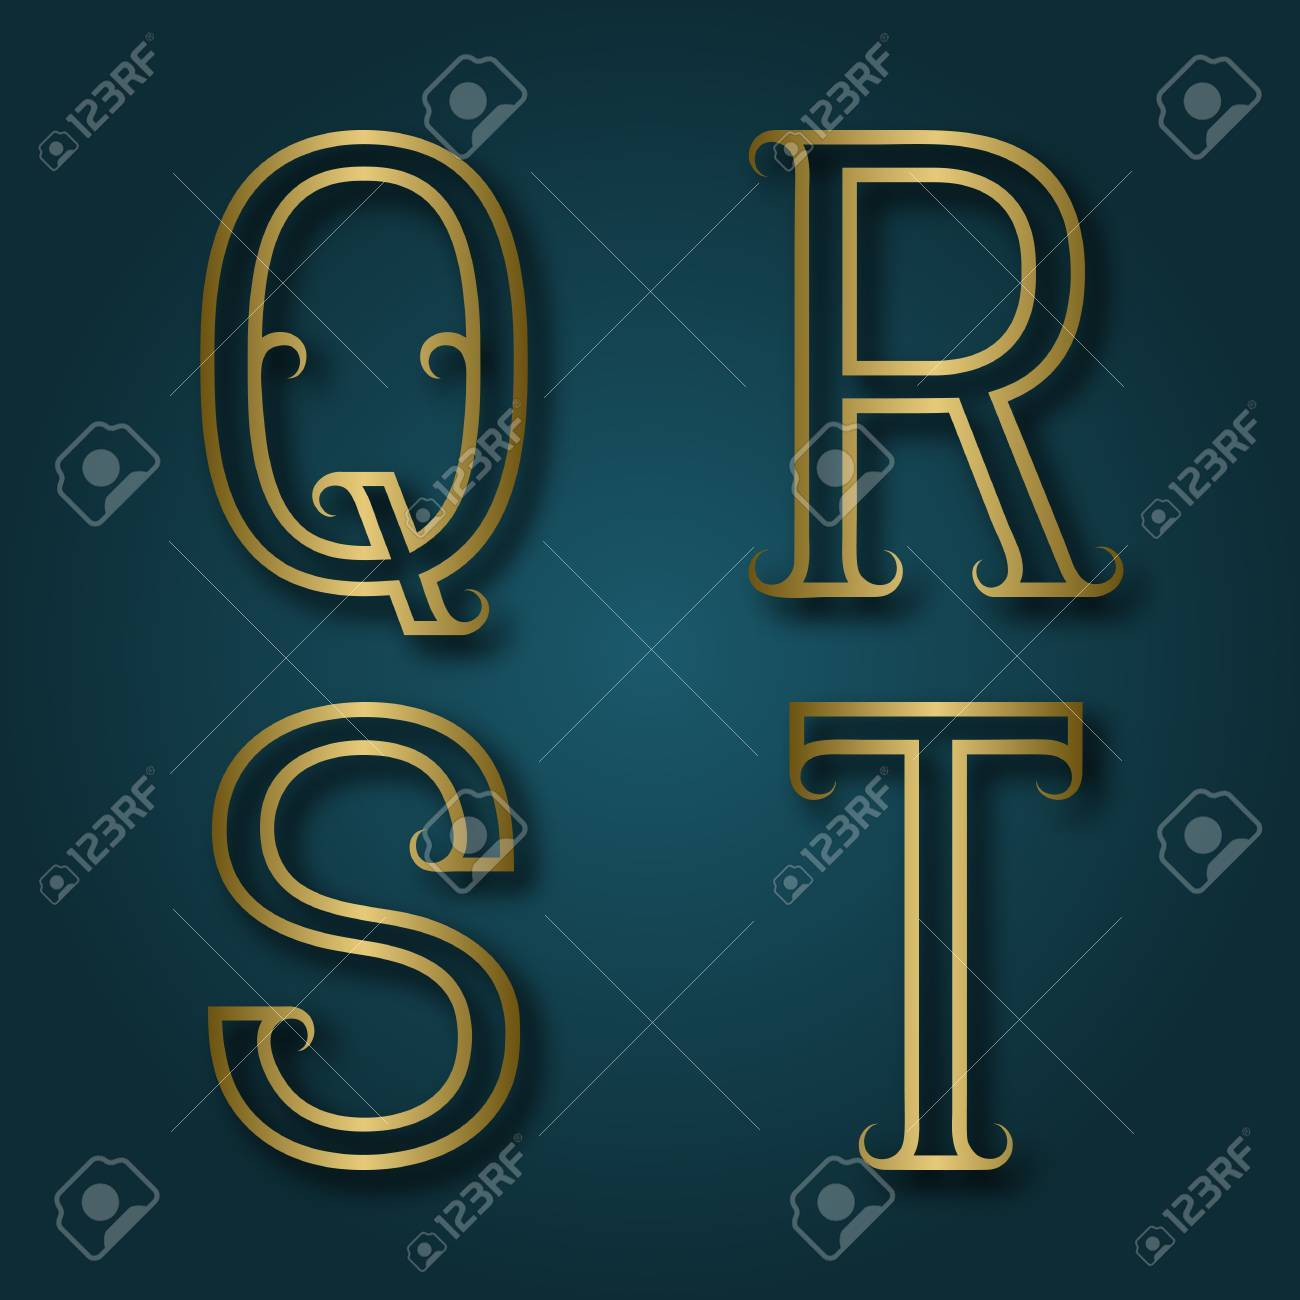 Q, R, S, T shiny golden letters with shadow. Outline font with